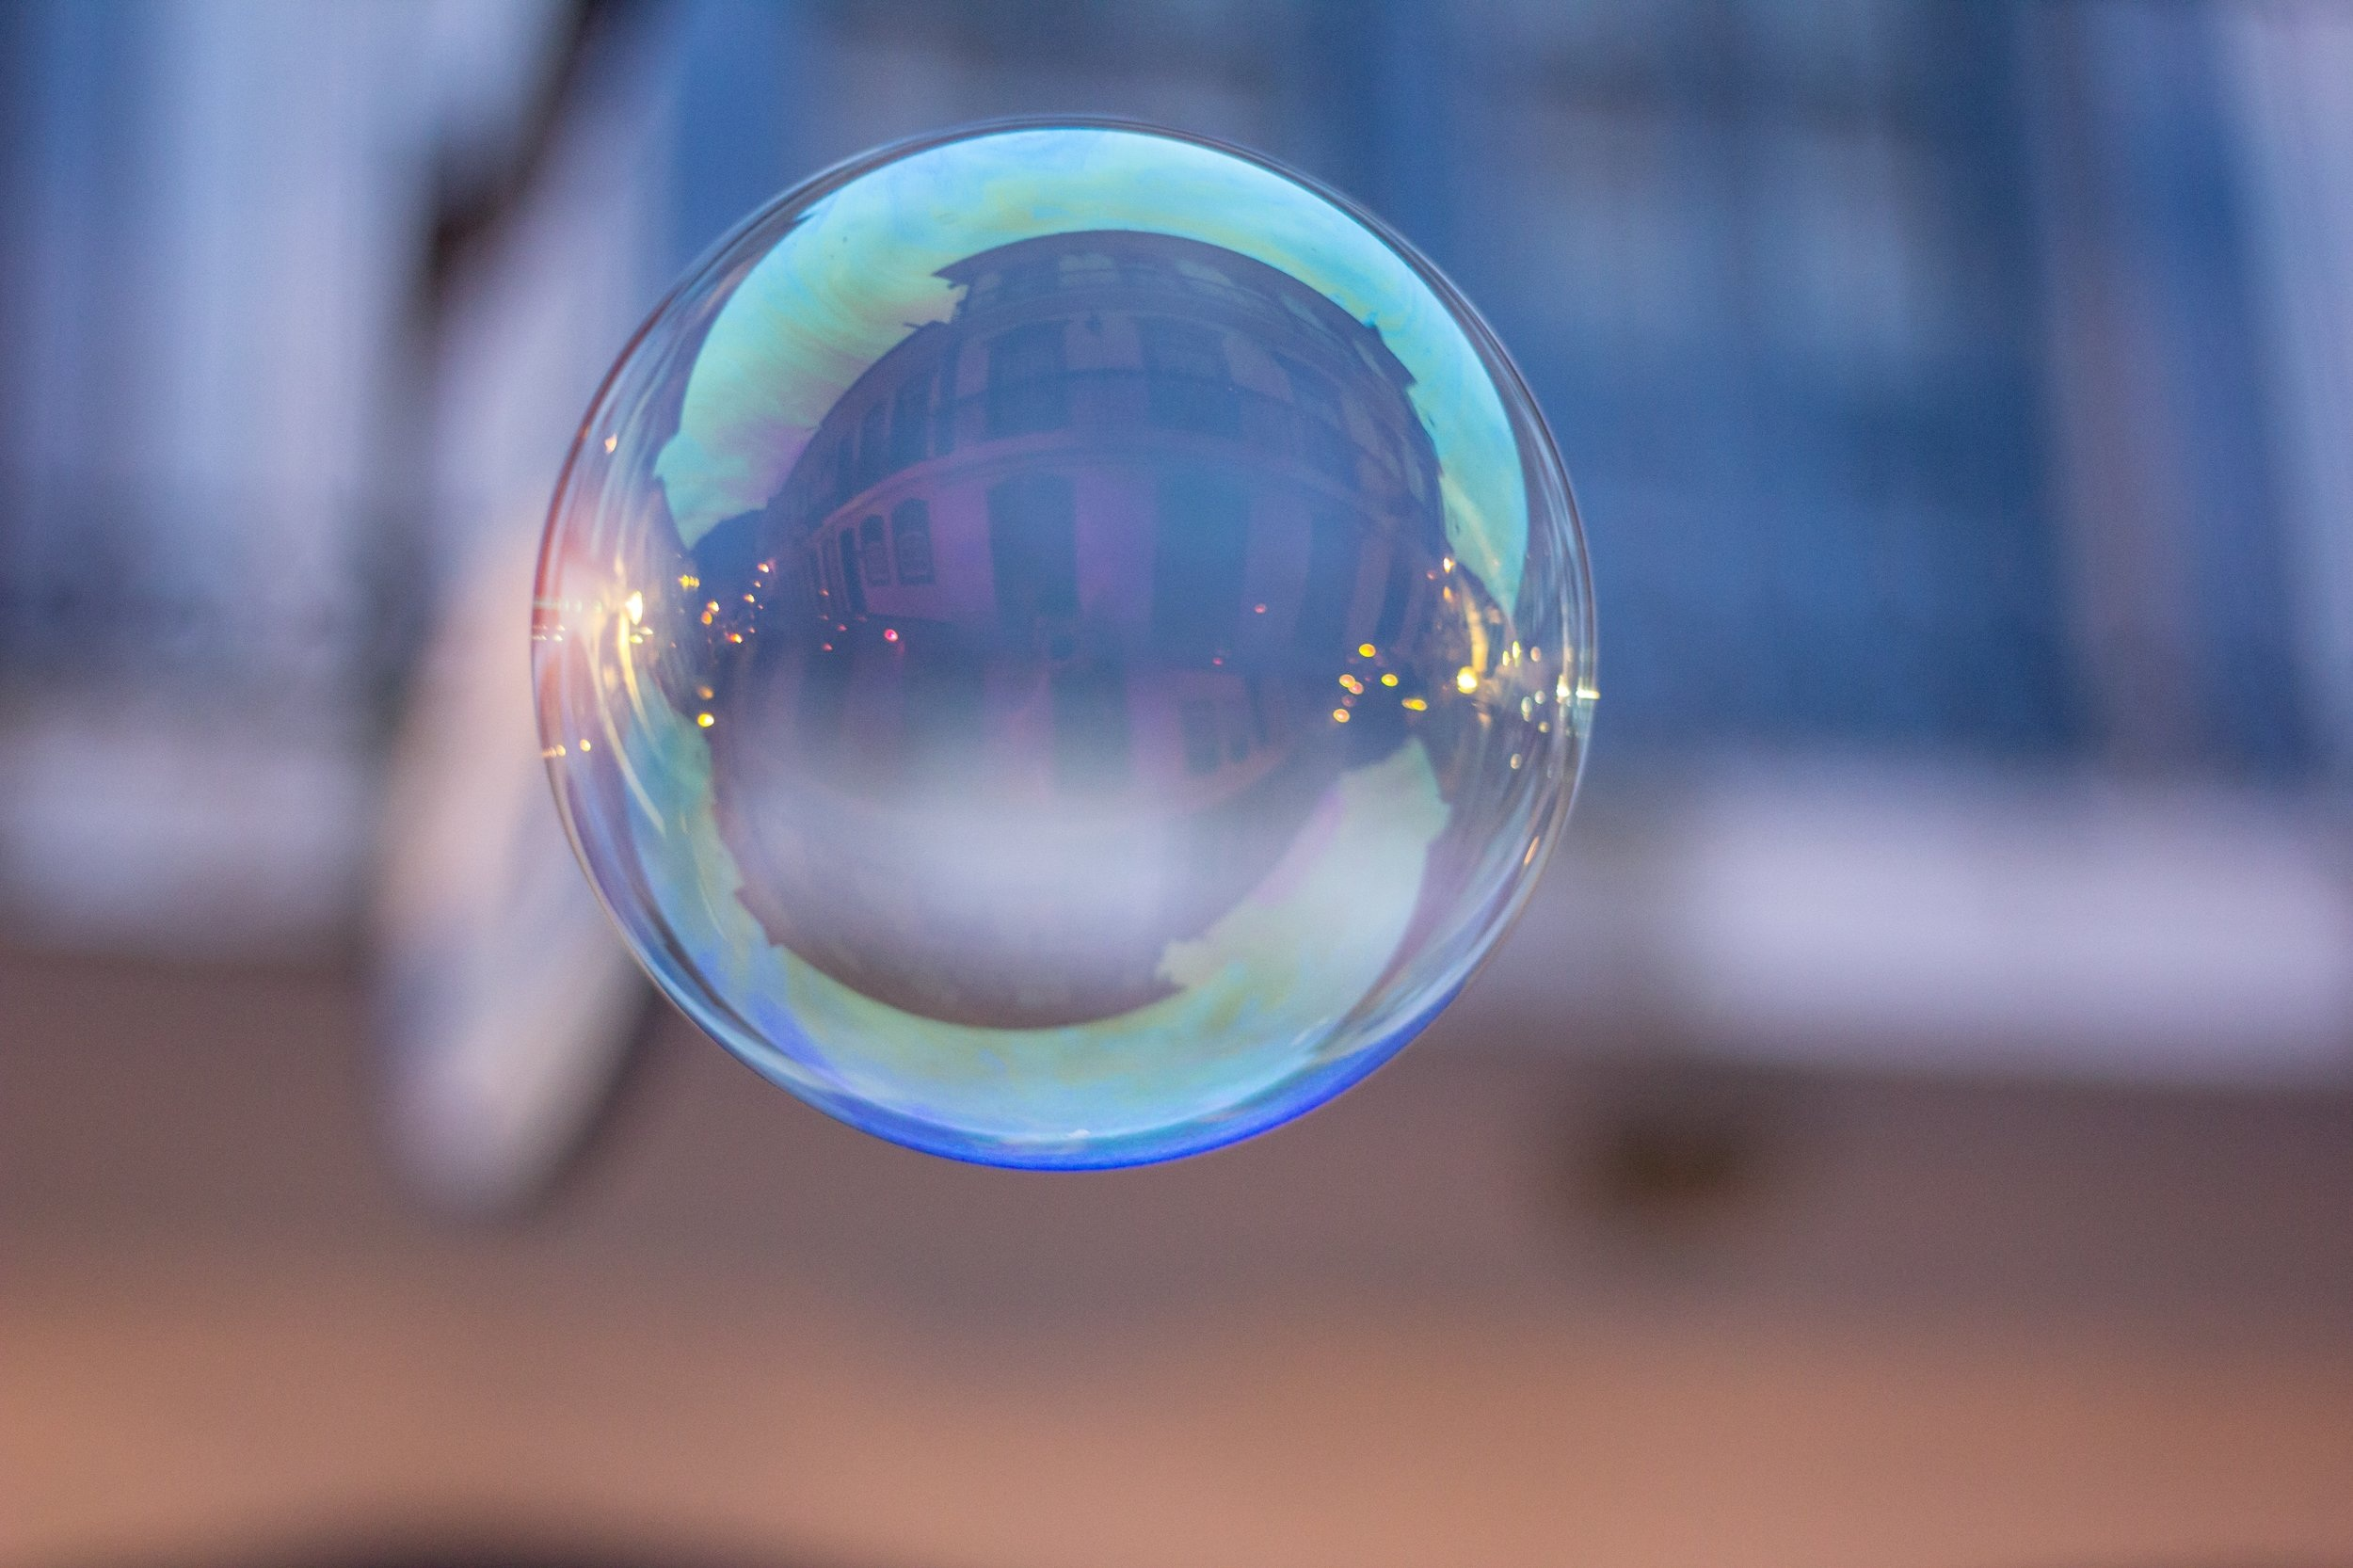 blur-blurred-background-bubble-824678.jpg